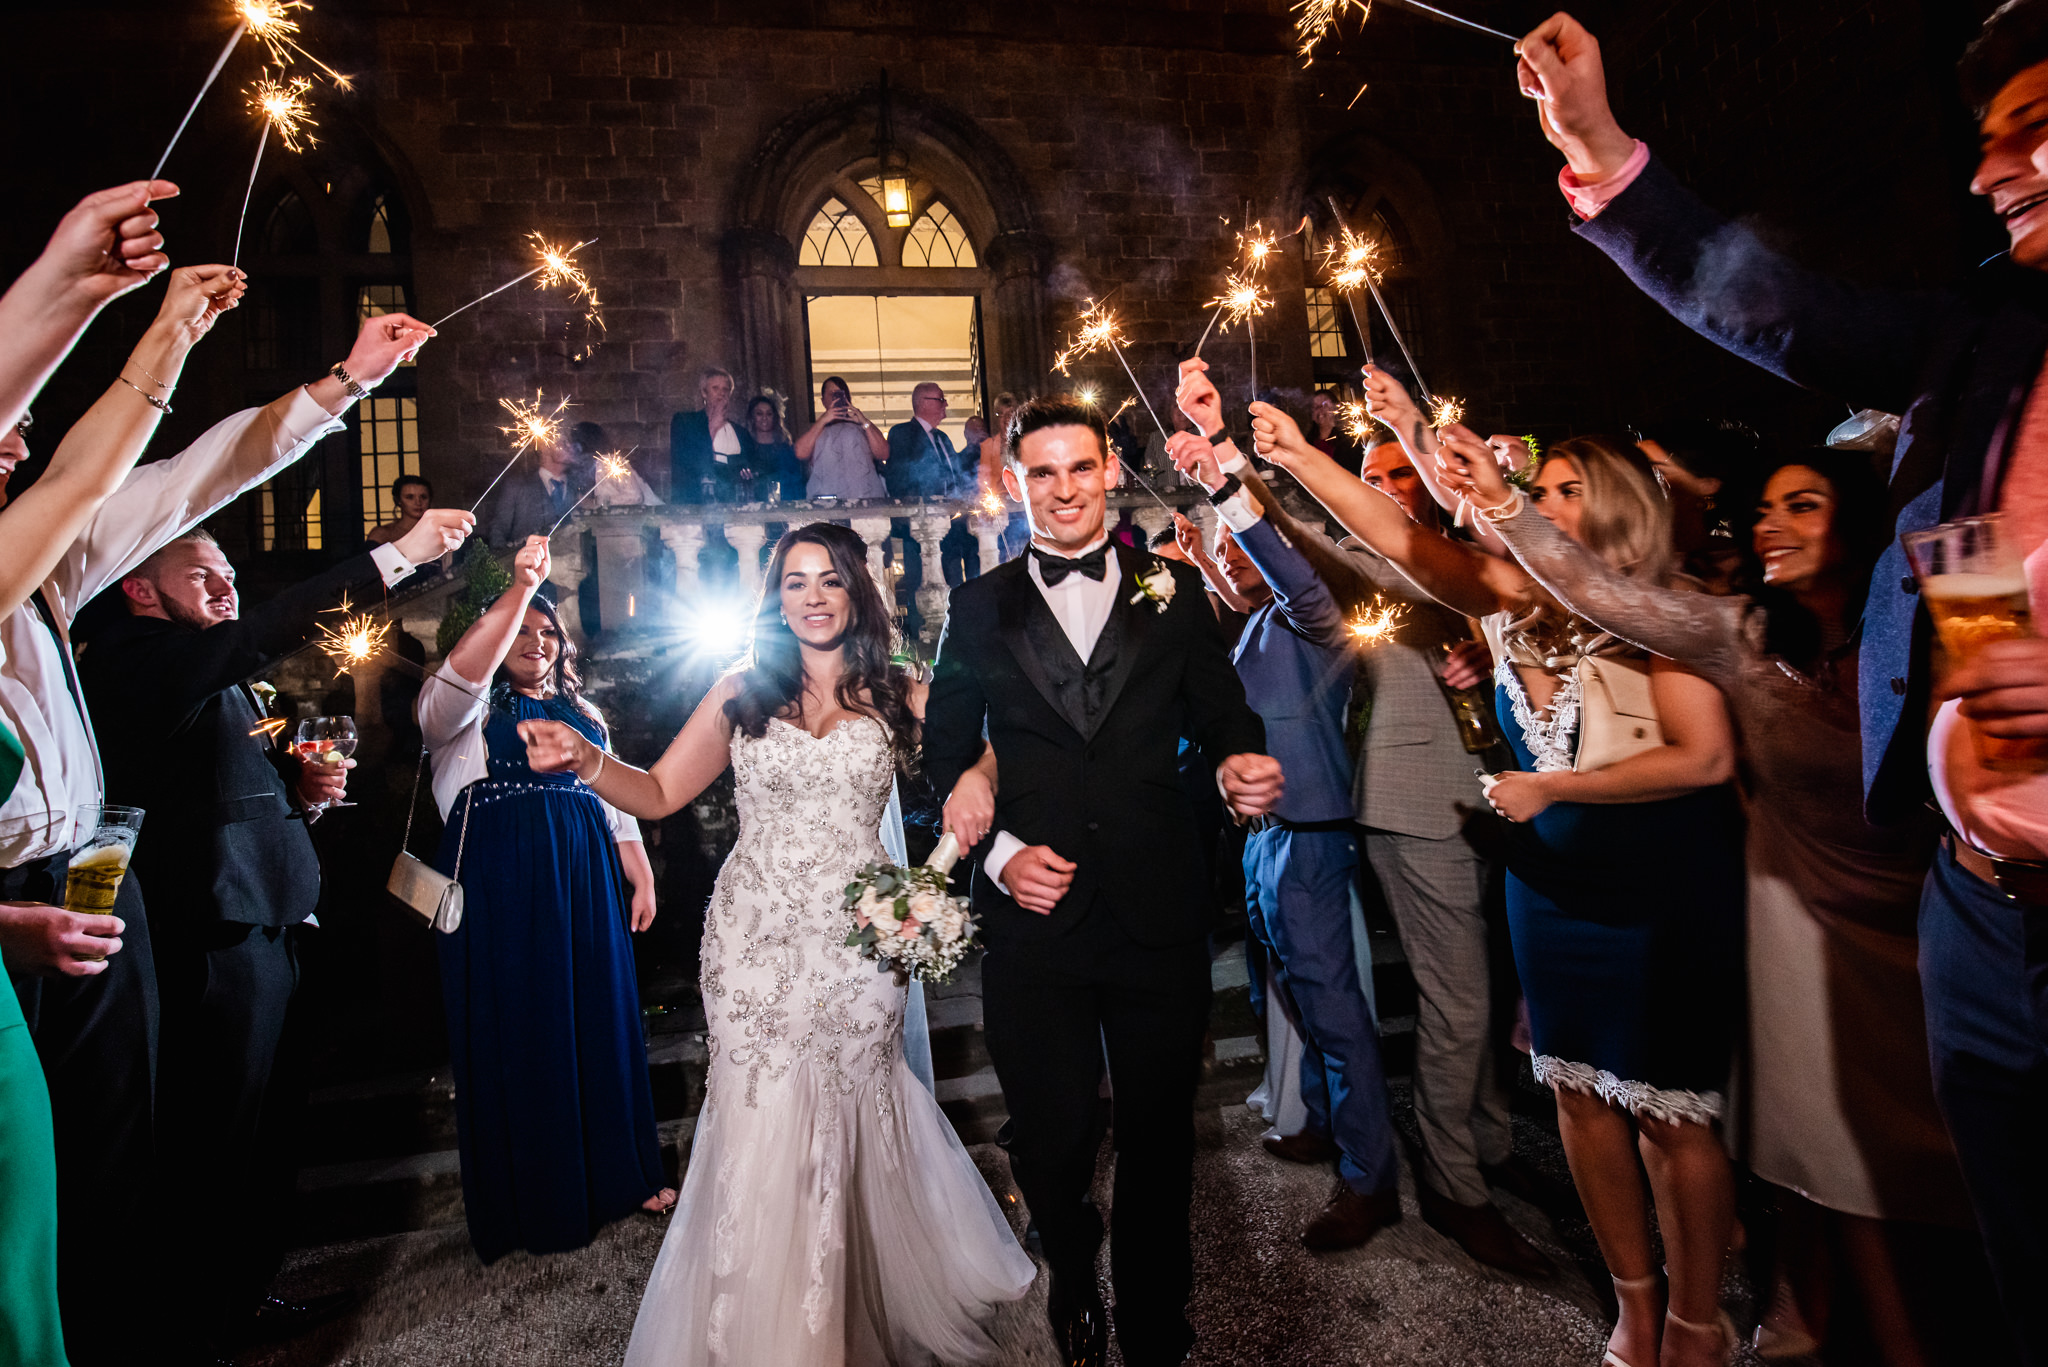 Clearwell-Castle-Gloucestershire-Wedding-Photography-18.jpg